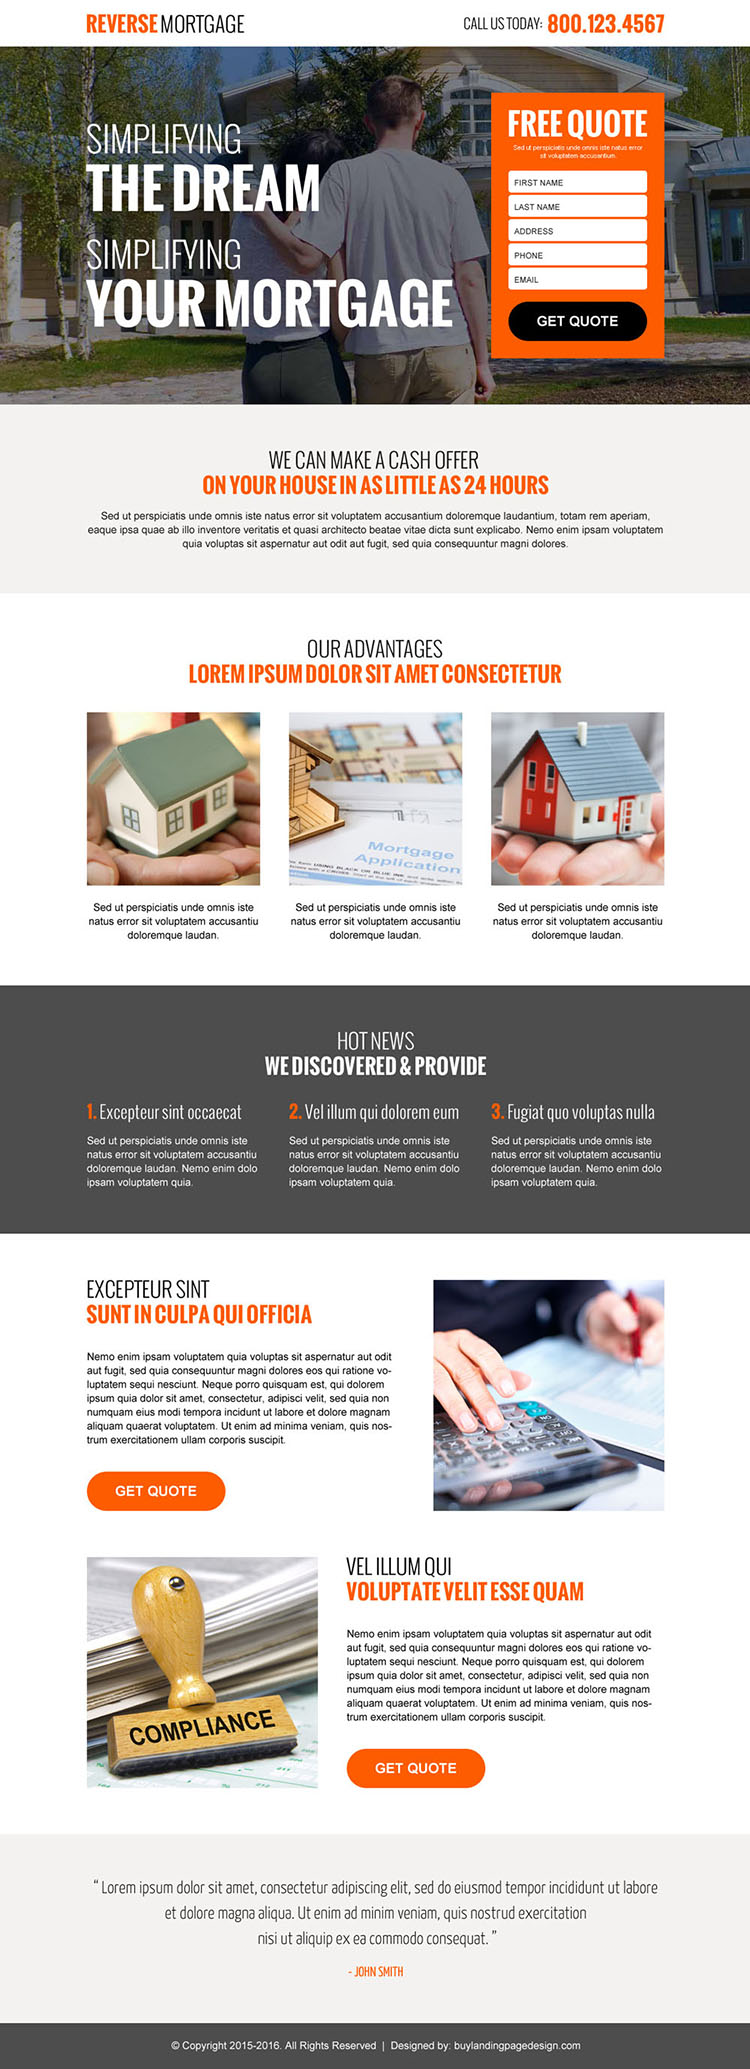 reverse mortgage free quote lead gen responsive landing page design